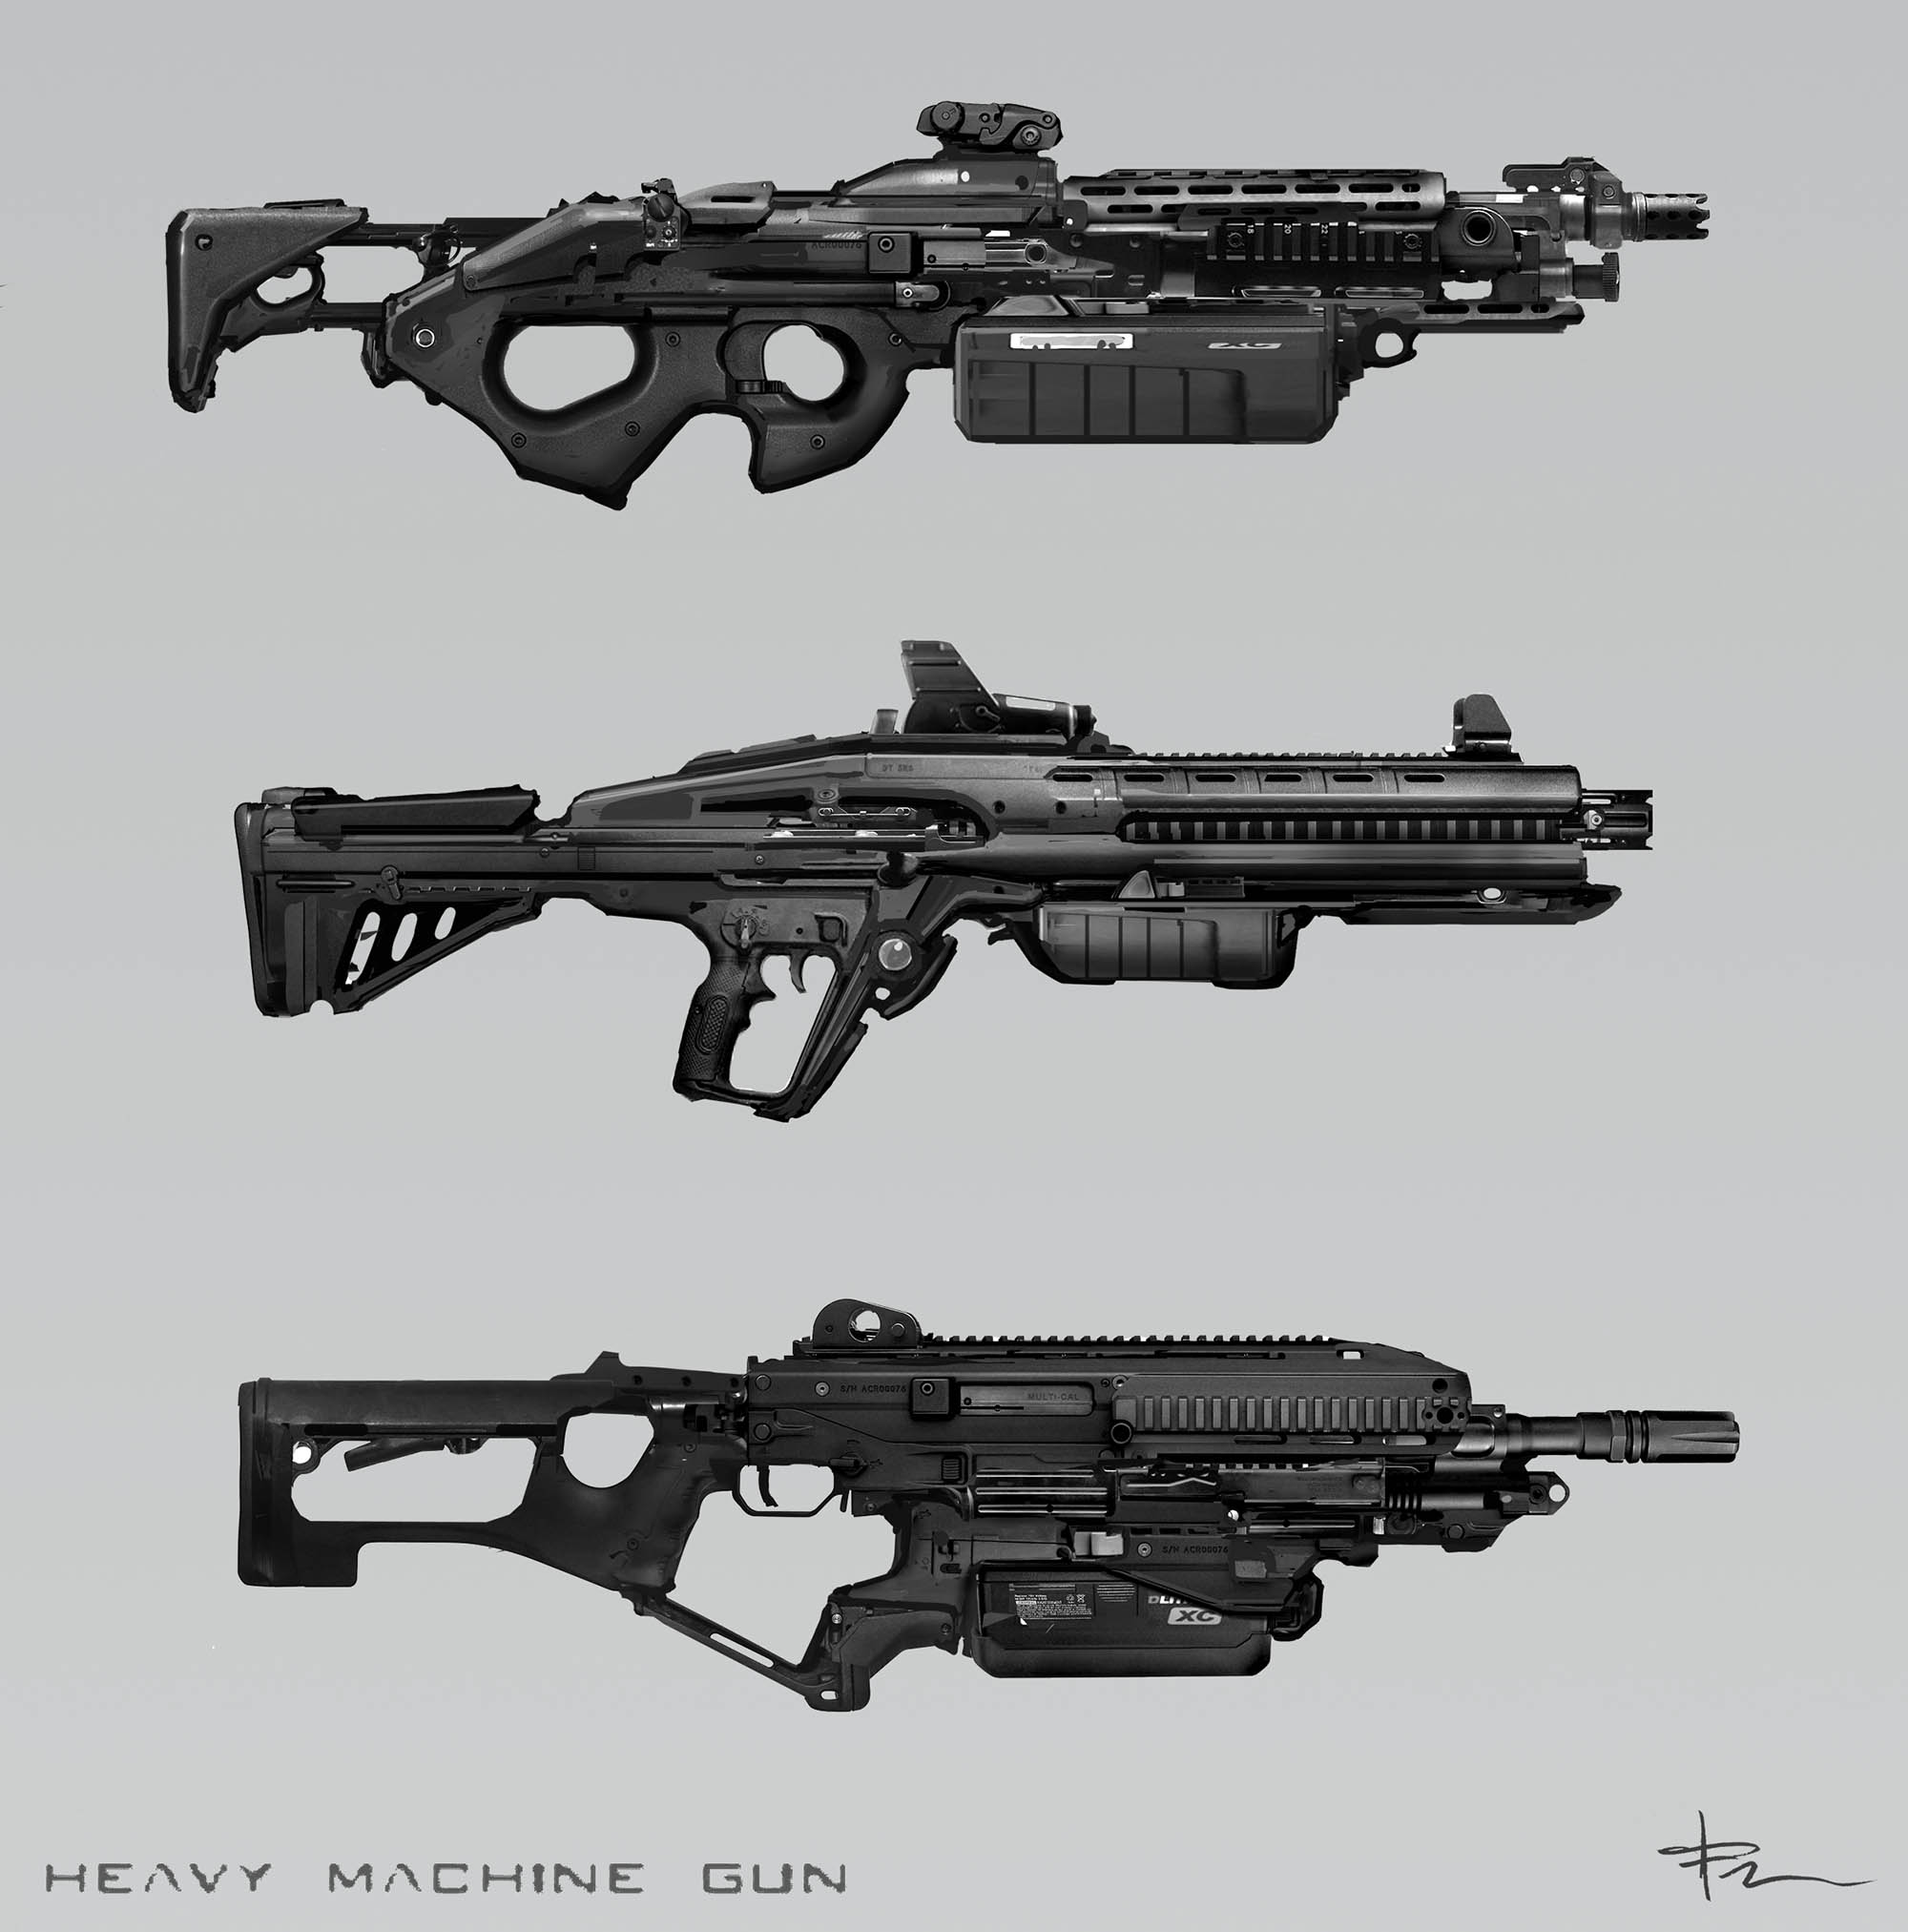 TJFRame-Art_Evolve_HeavyMachineGunConcepts.jpg